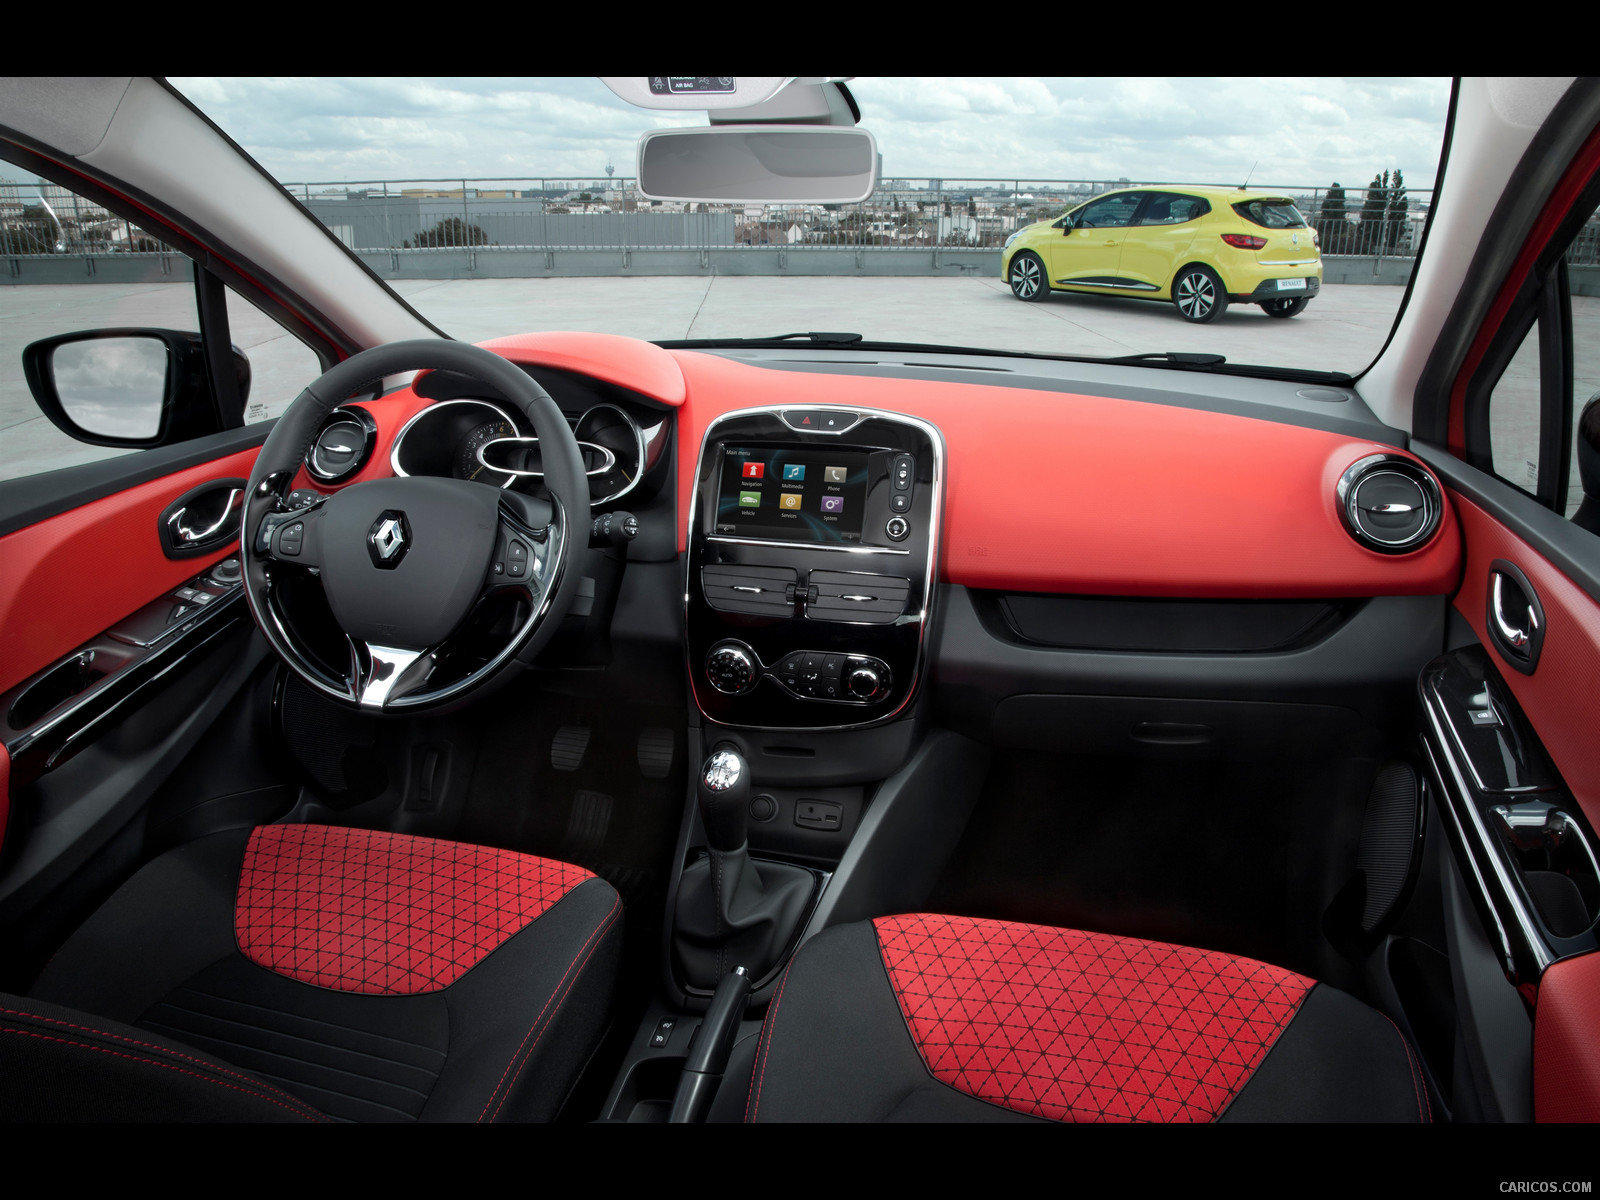 Download hd 1600x1200 Renault Clio desktop background ID:250159 for free